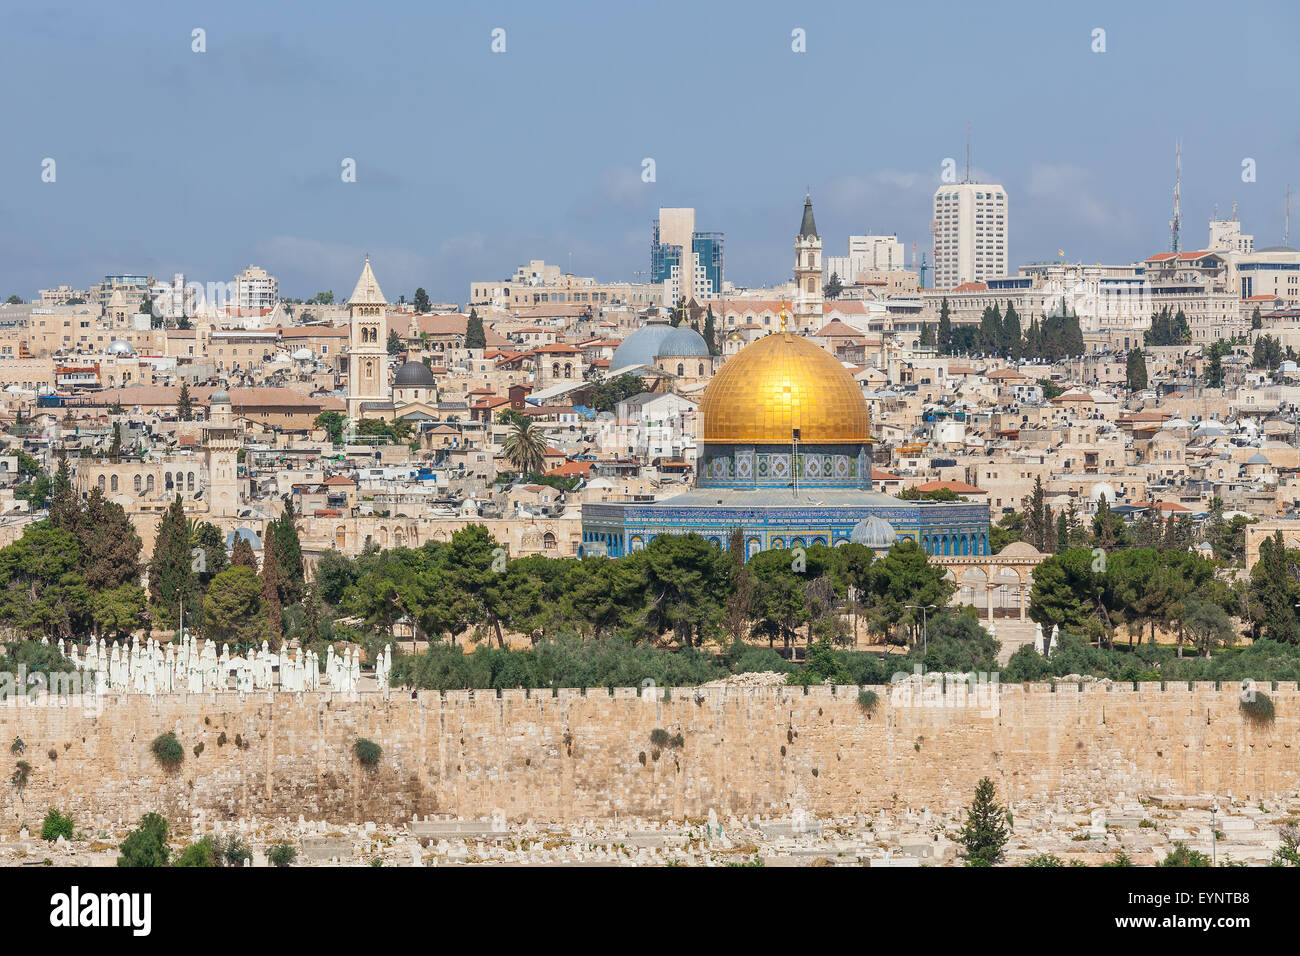 View on Old City and Dome of the Rock Mosque in Jerusalem, Israel. - Stock Image